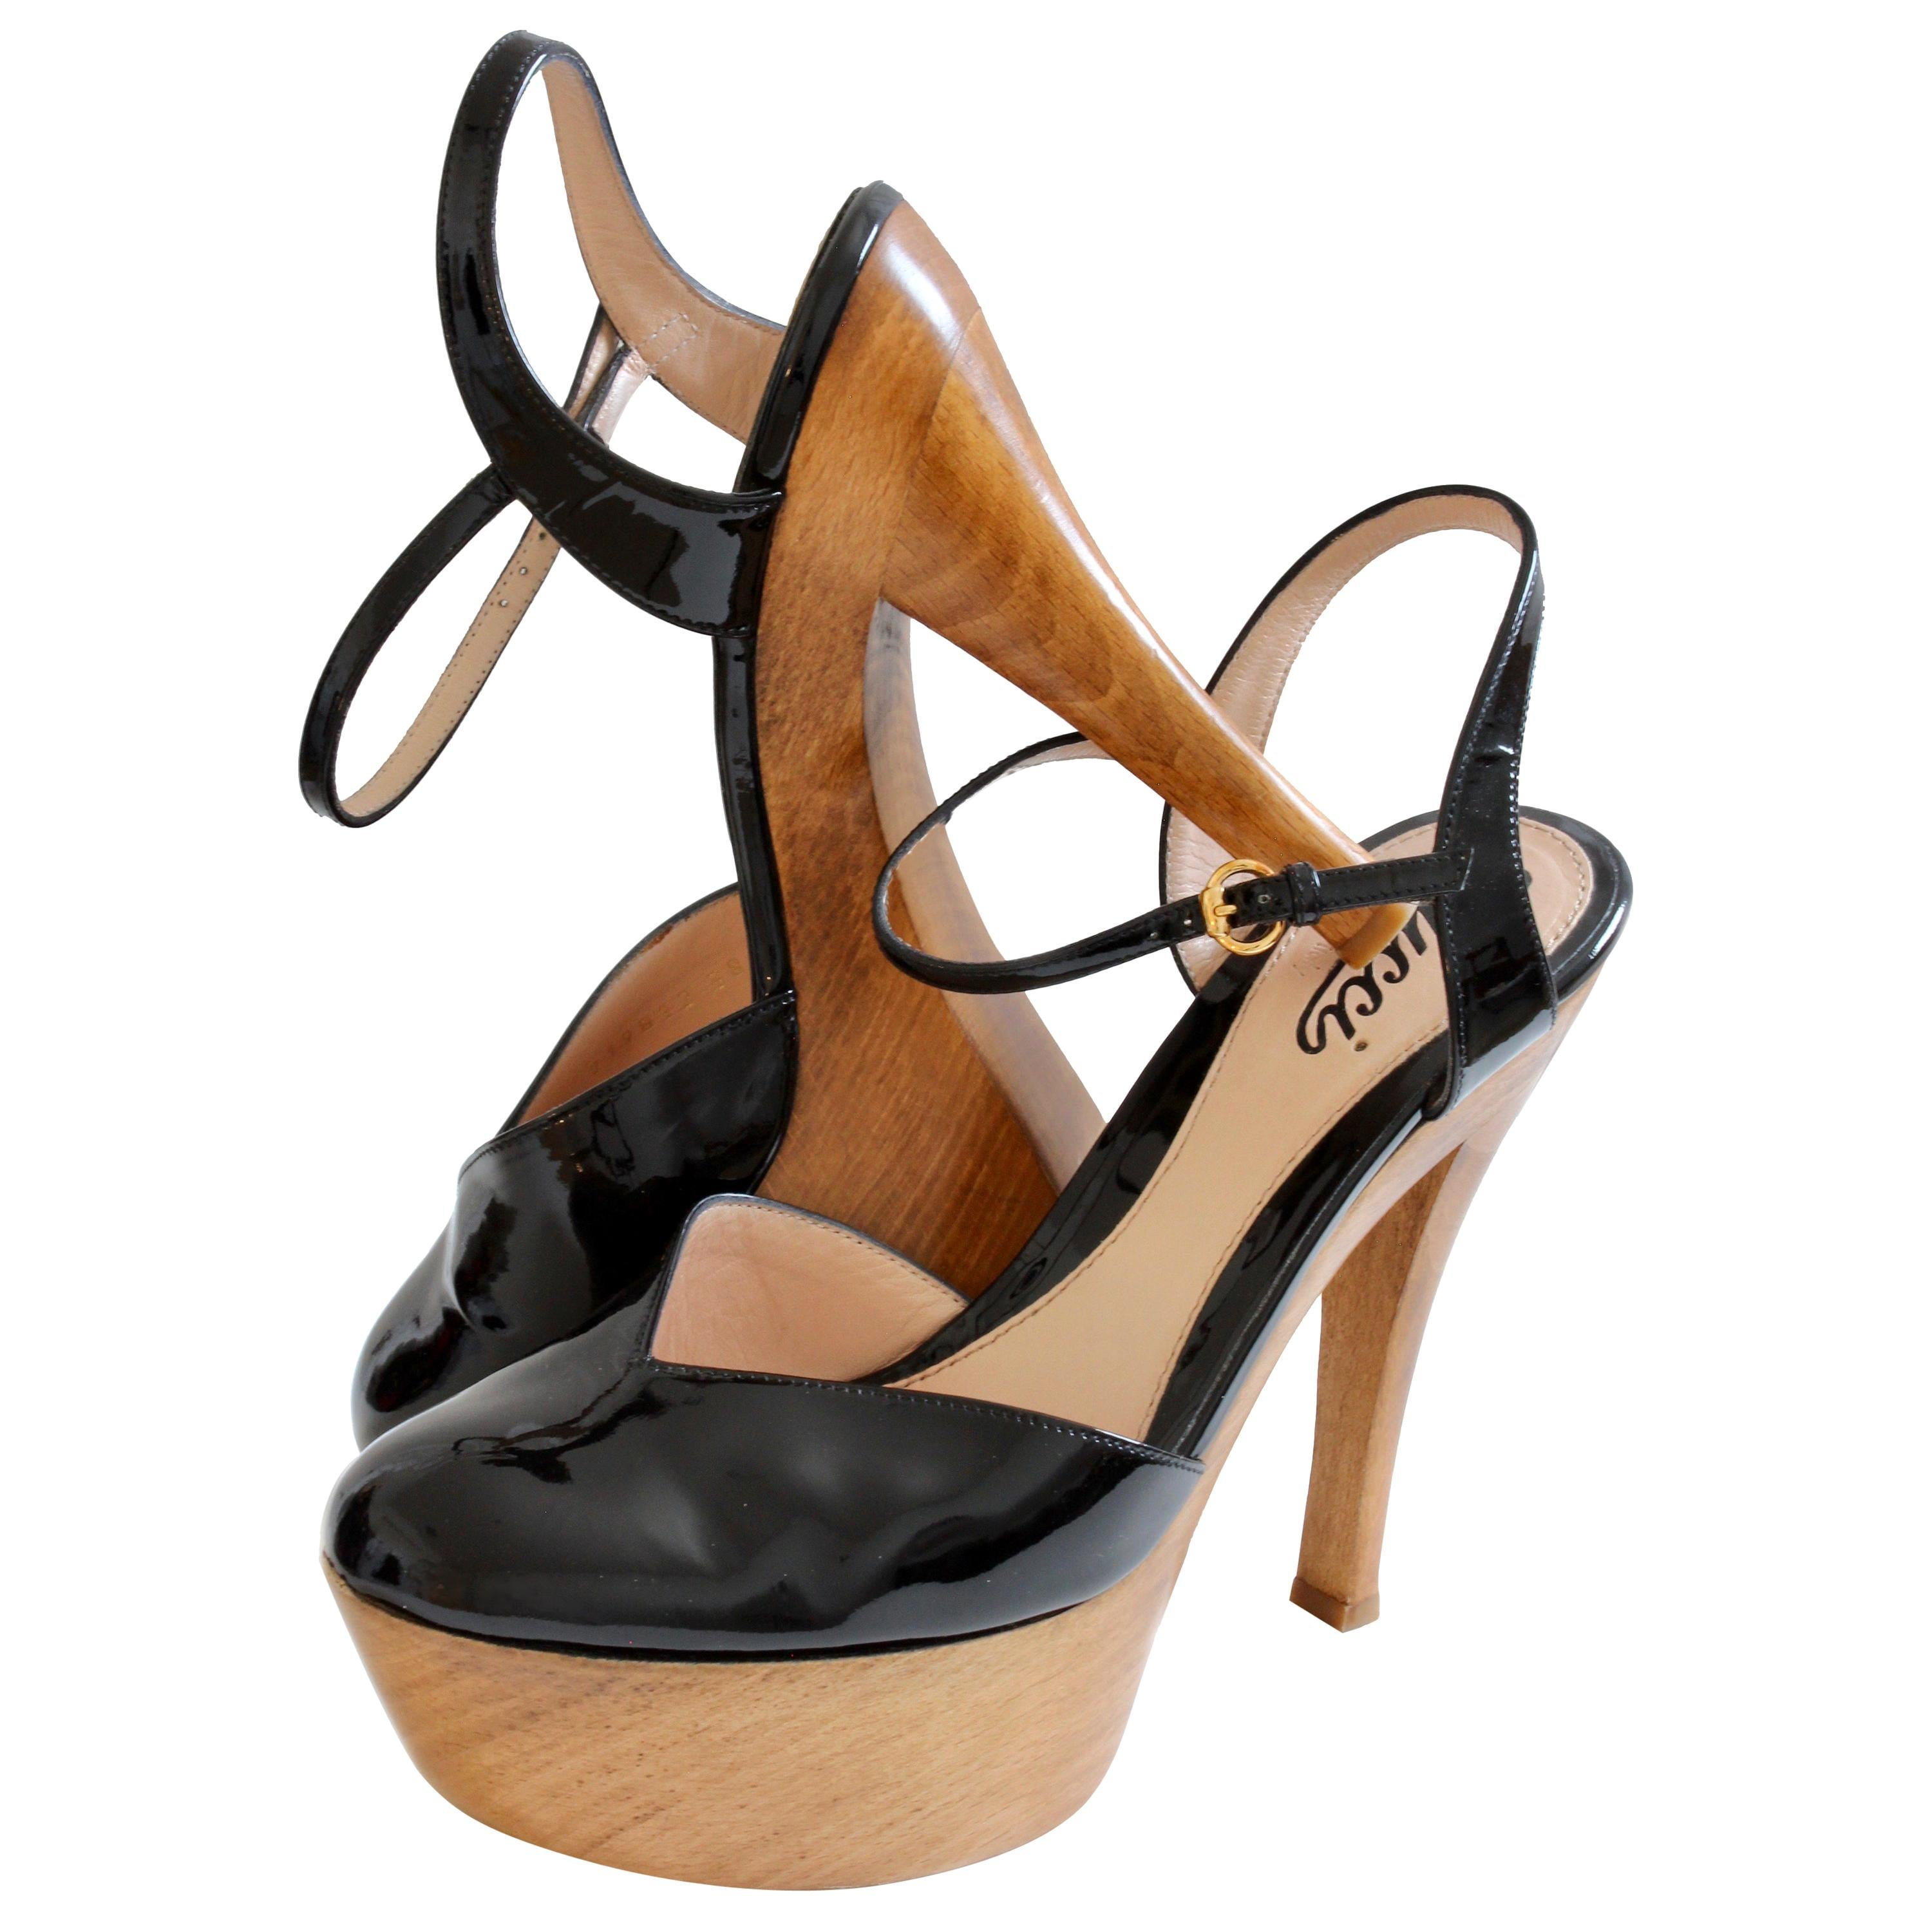 Gucci Platform Shoes Black Patent Leather Ankle Strap Wood Heel in Box sz 38